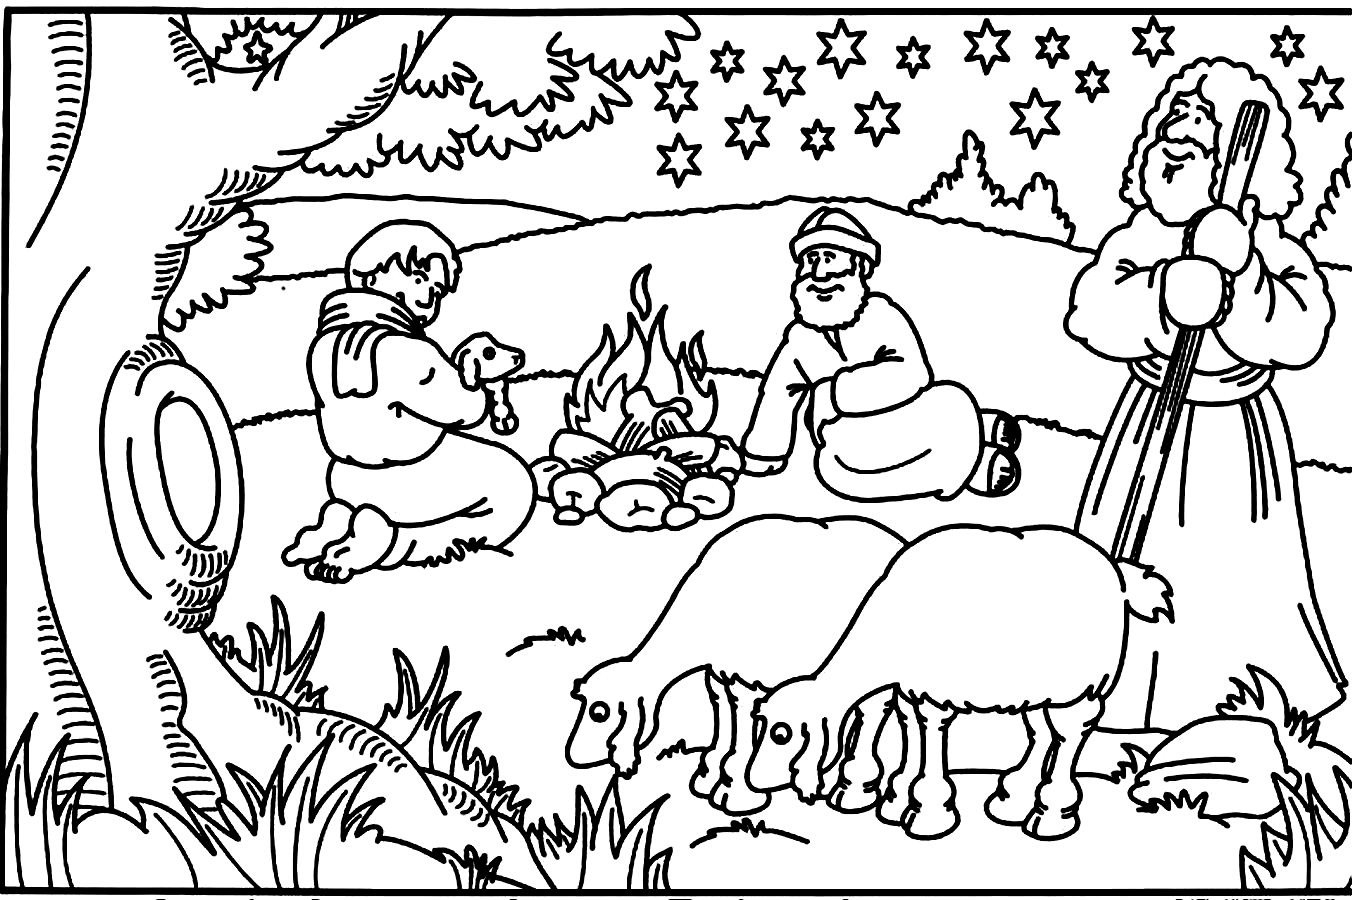 Coloring Pages Coloring Pages Bible Stories children bible stories coloring pages az story for kids page 1